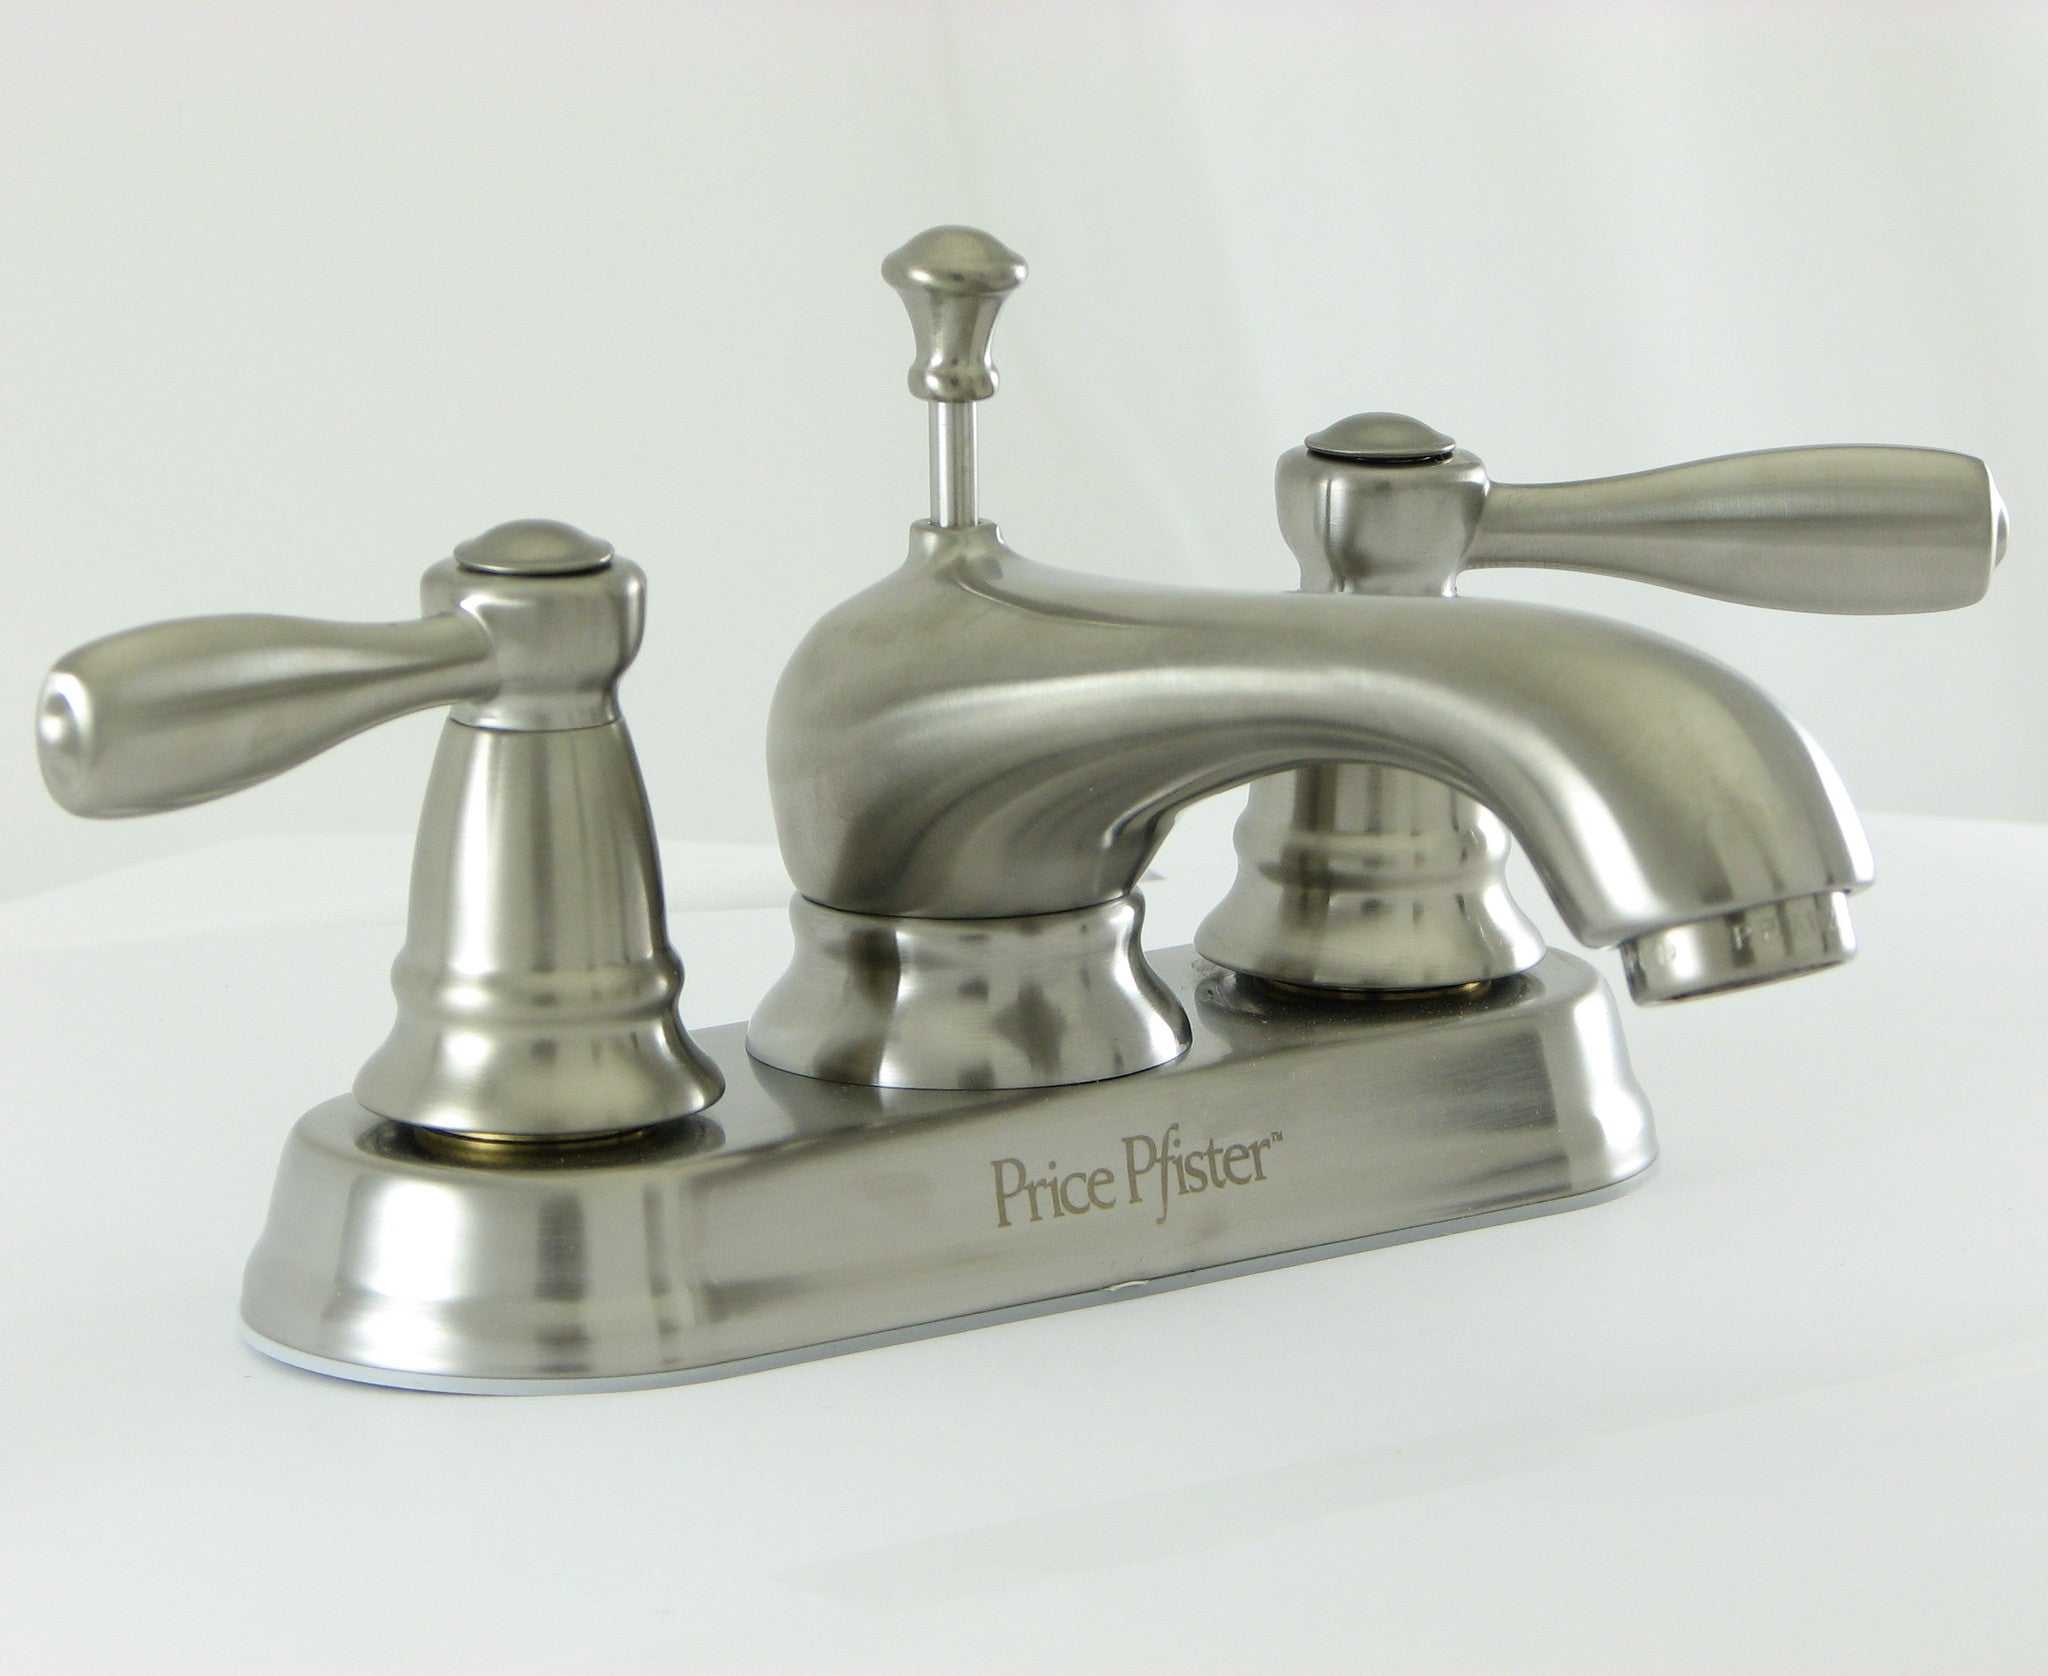 Price Pfister Bath Faucet Your Home Supply